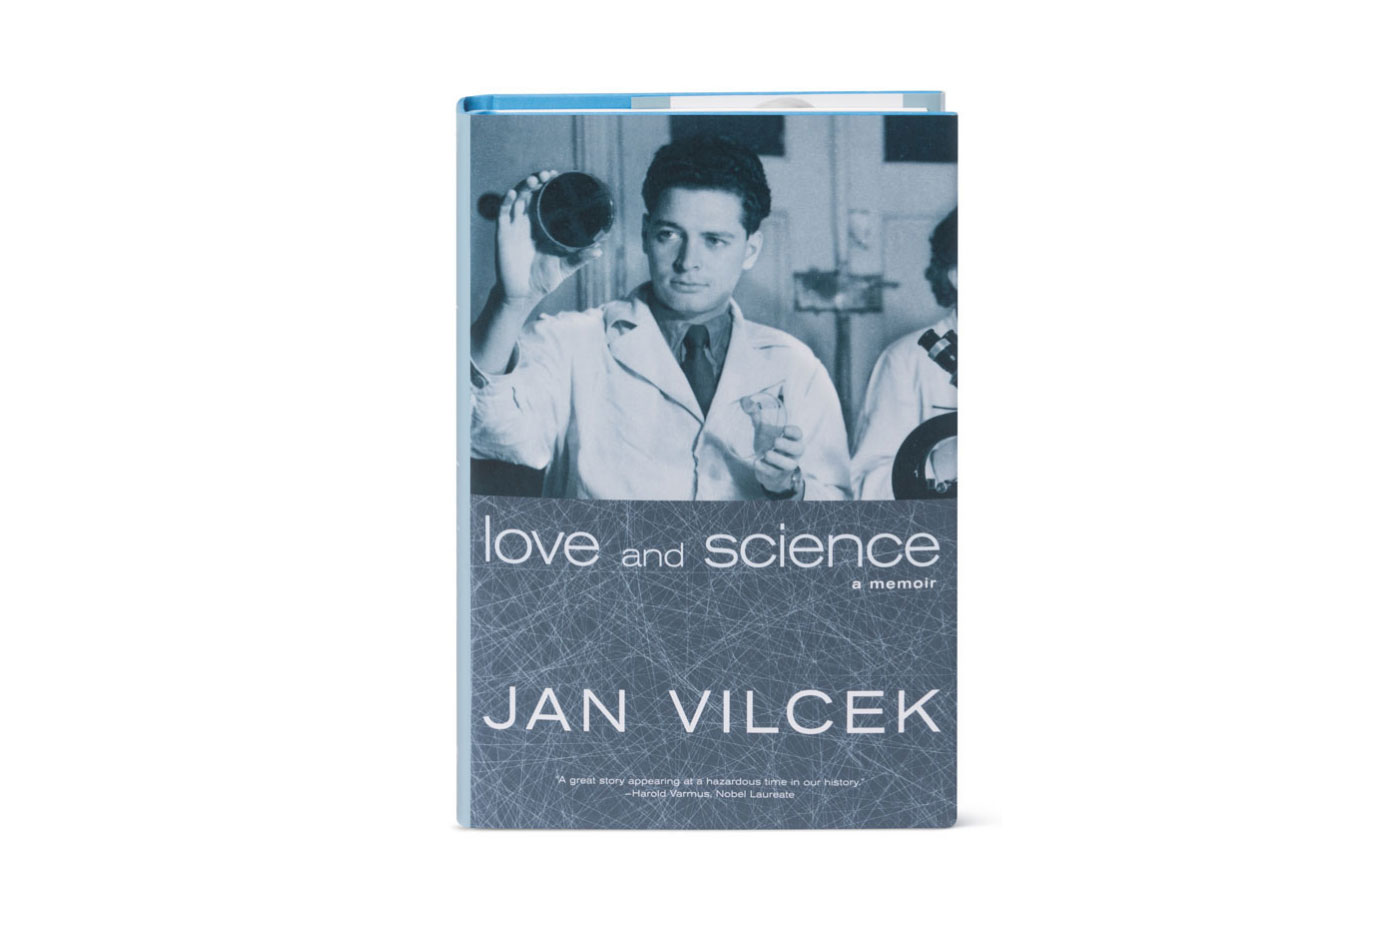 'Love and Science' by Jan Vilcek book cover